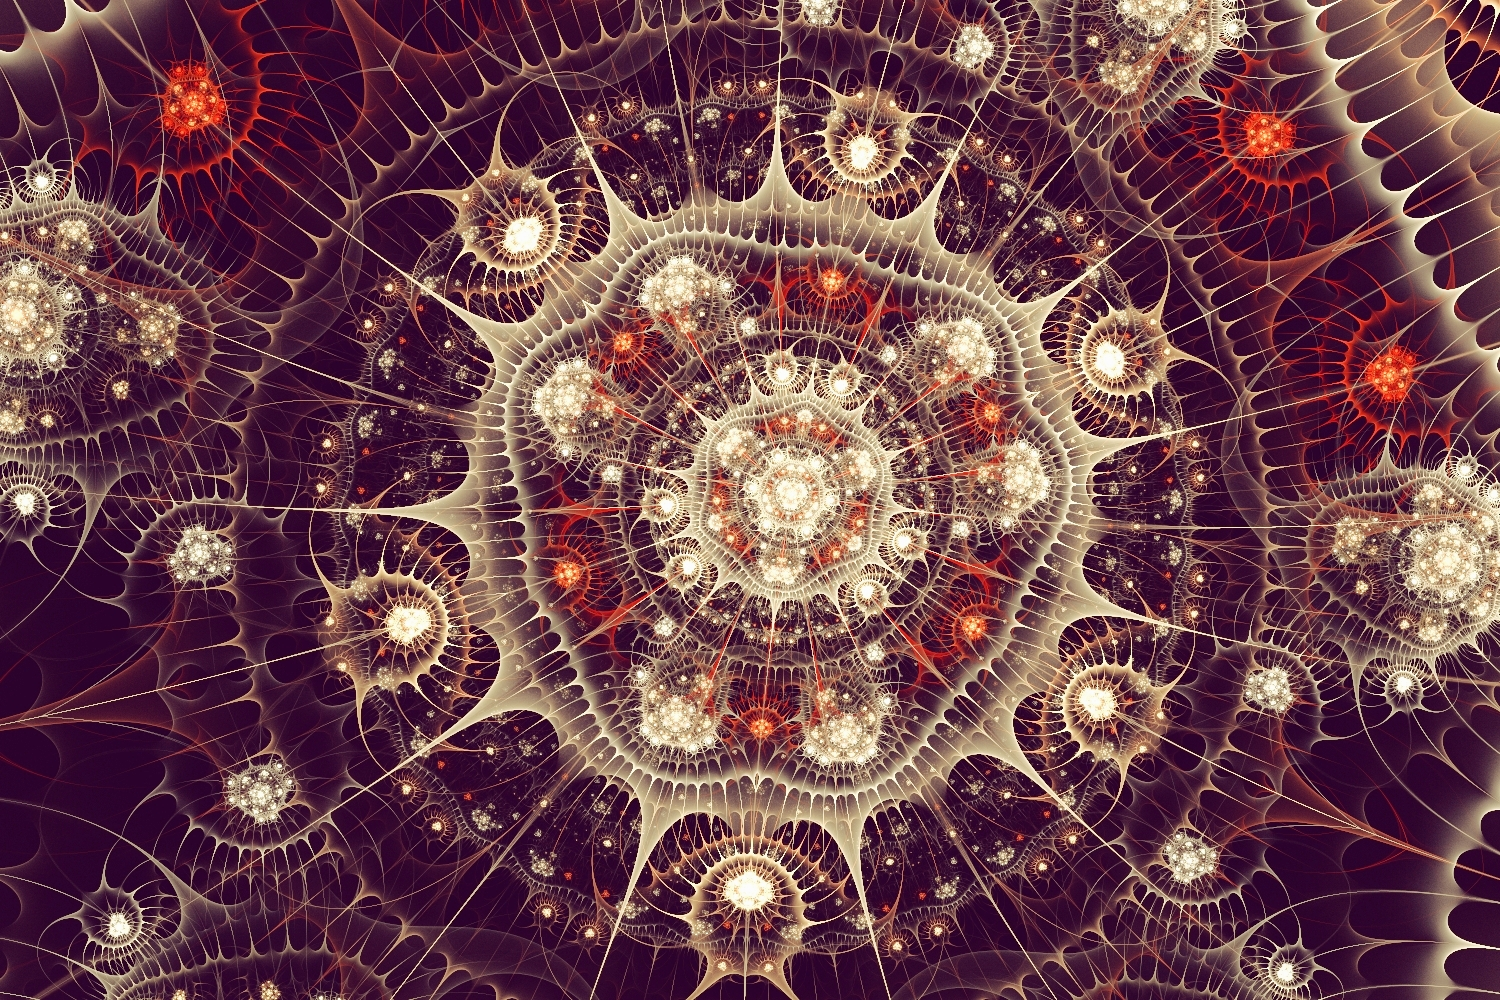 27 11 by kimsmile